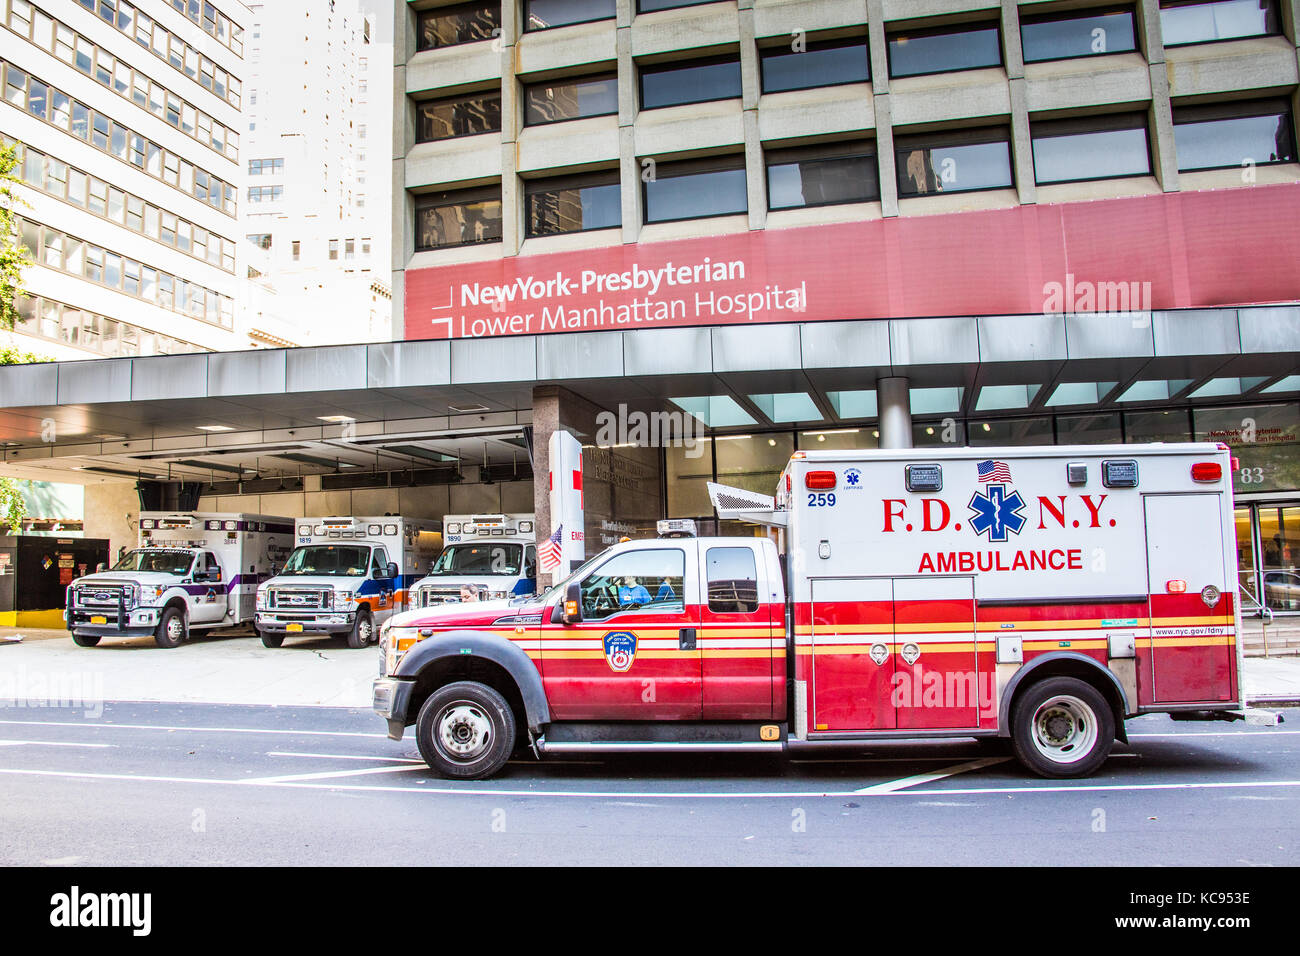 FDNY Ambulance infront of Neww York Presbyterian Hospital, Lower